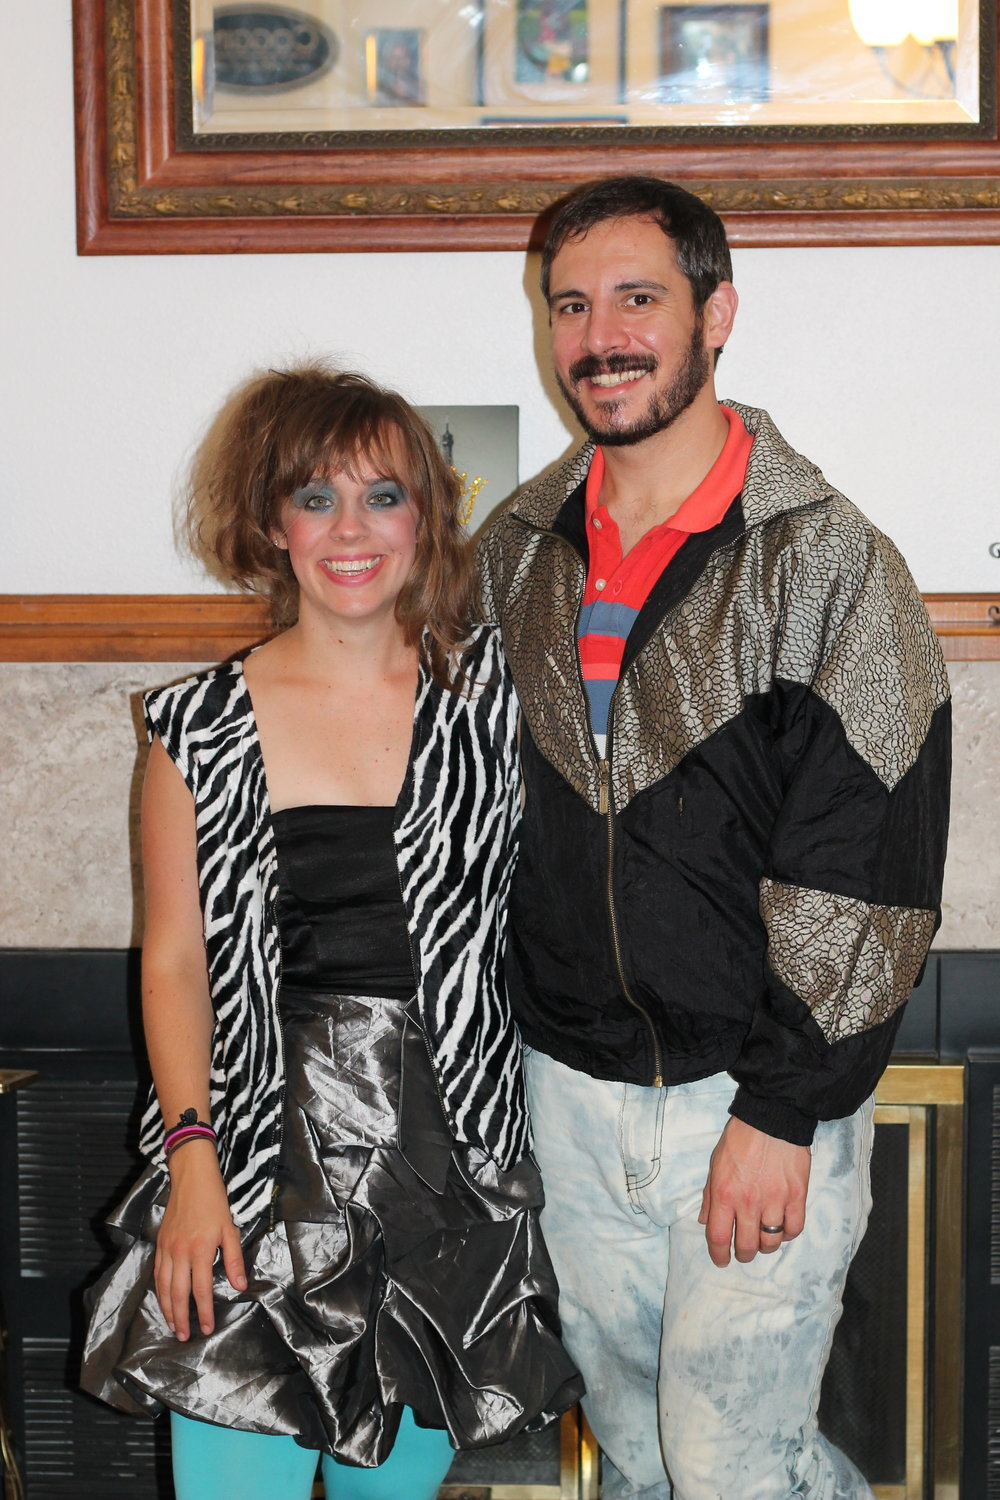 80's couple costume!